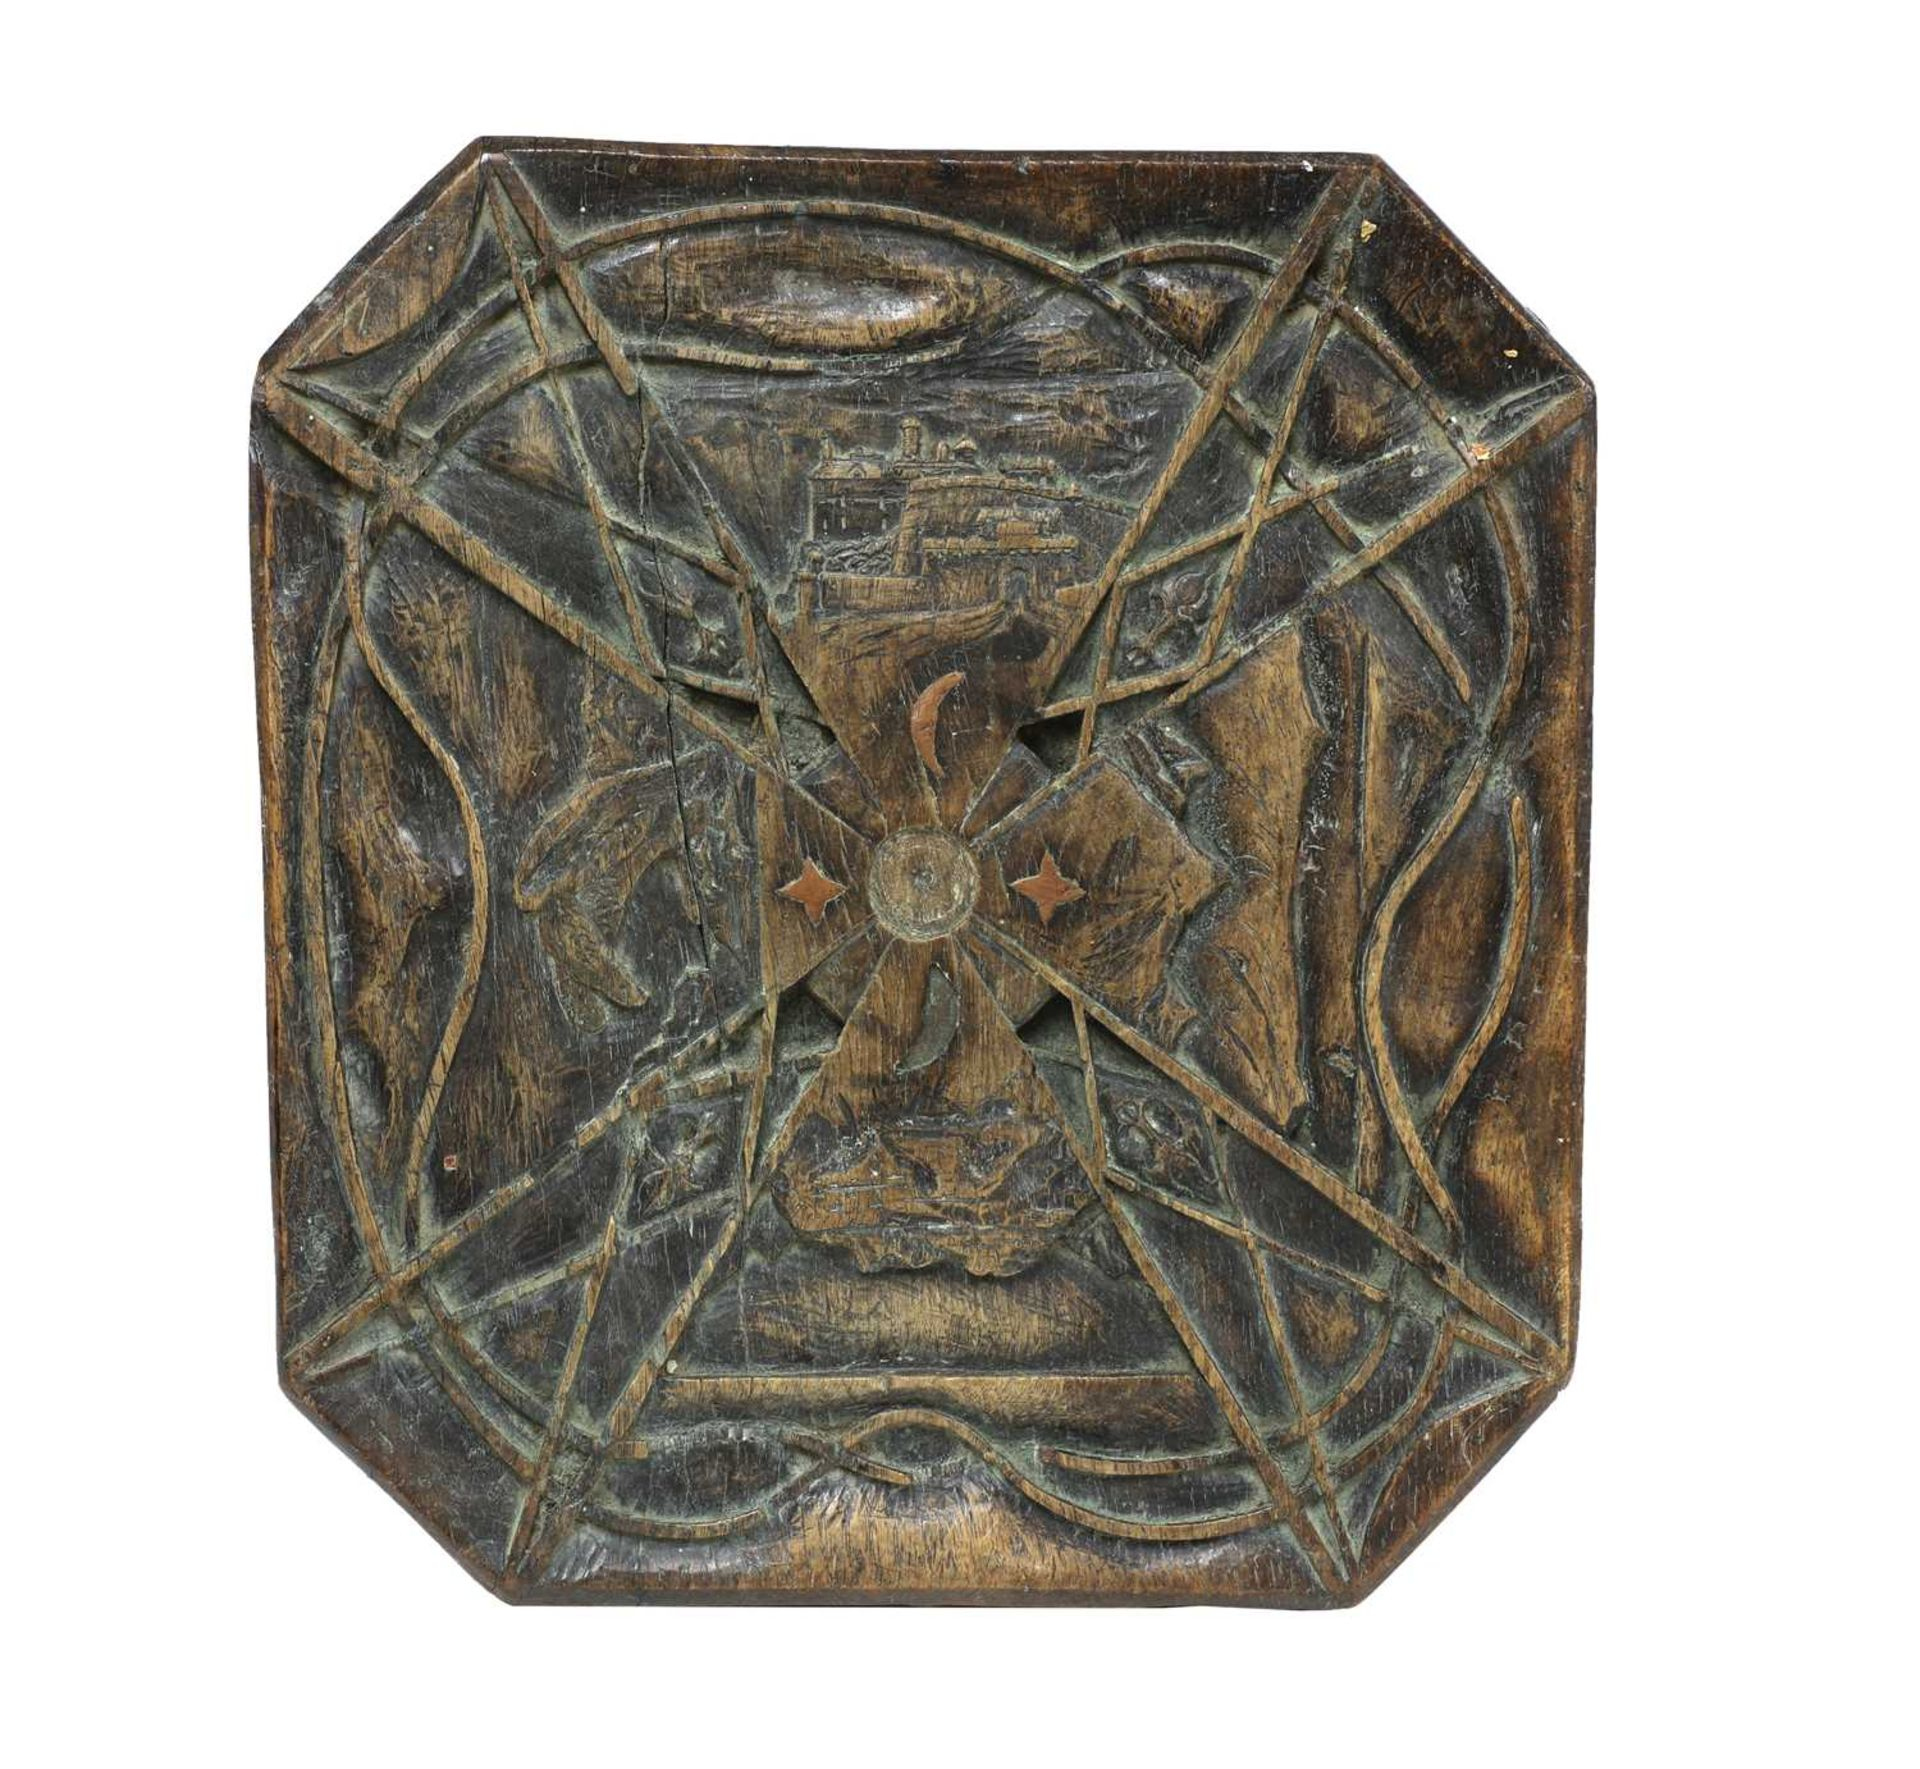 A carved and inlaid talismanic stool, - Image 2 of 6